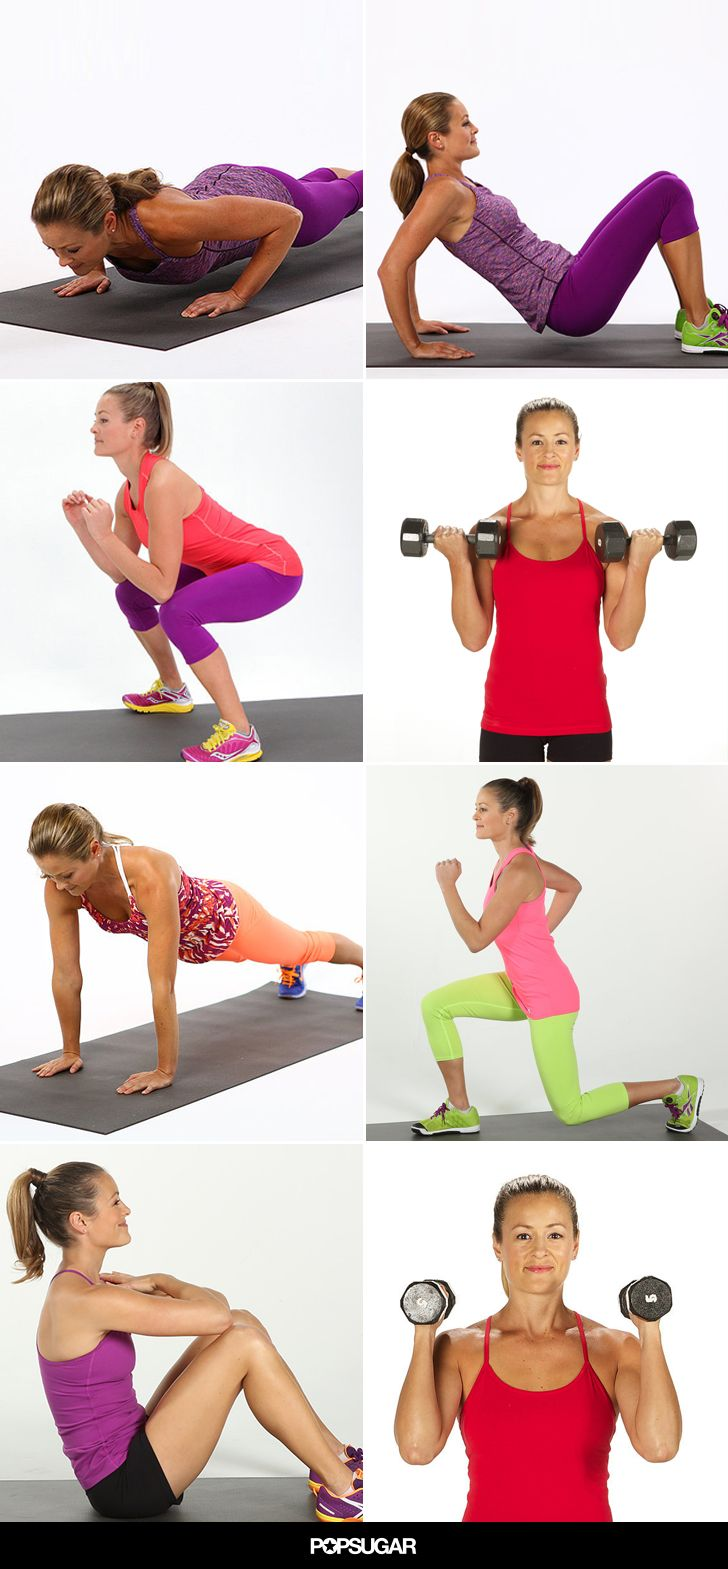 If you learn these right strength training exercises, you'll be able to do a solid workout routine just about anywhere.